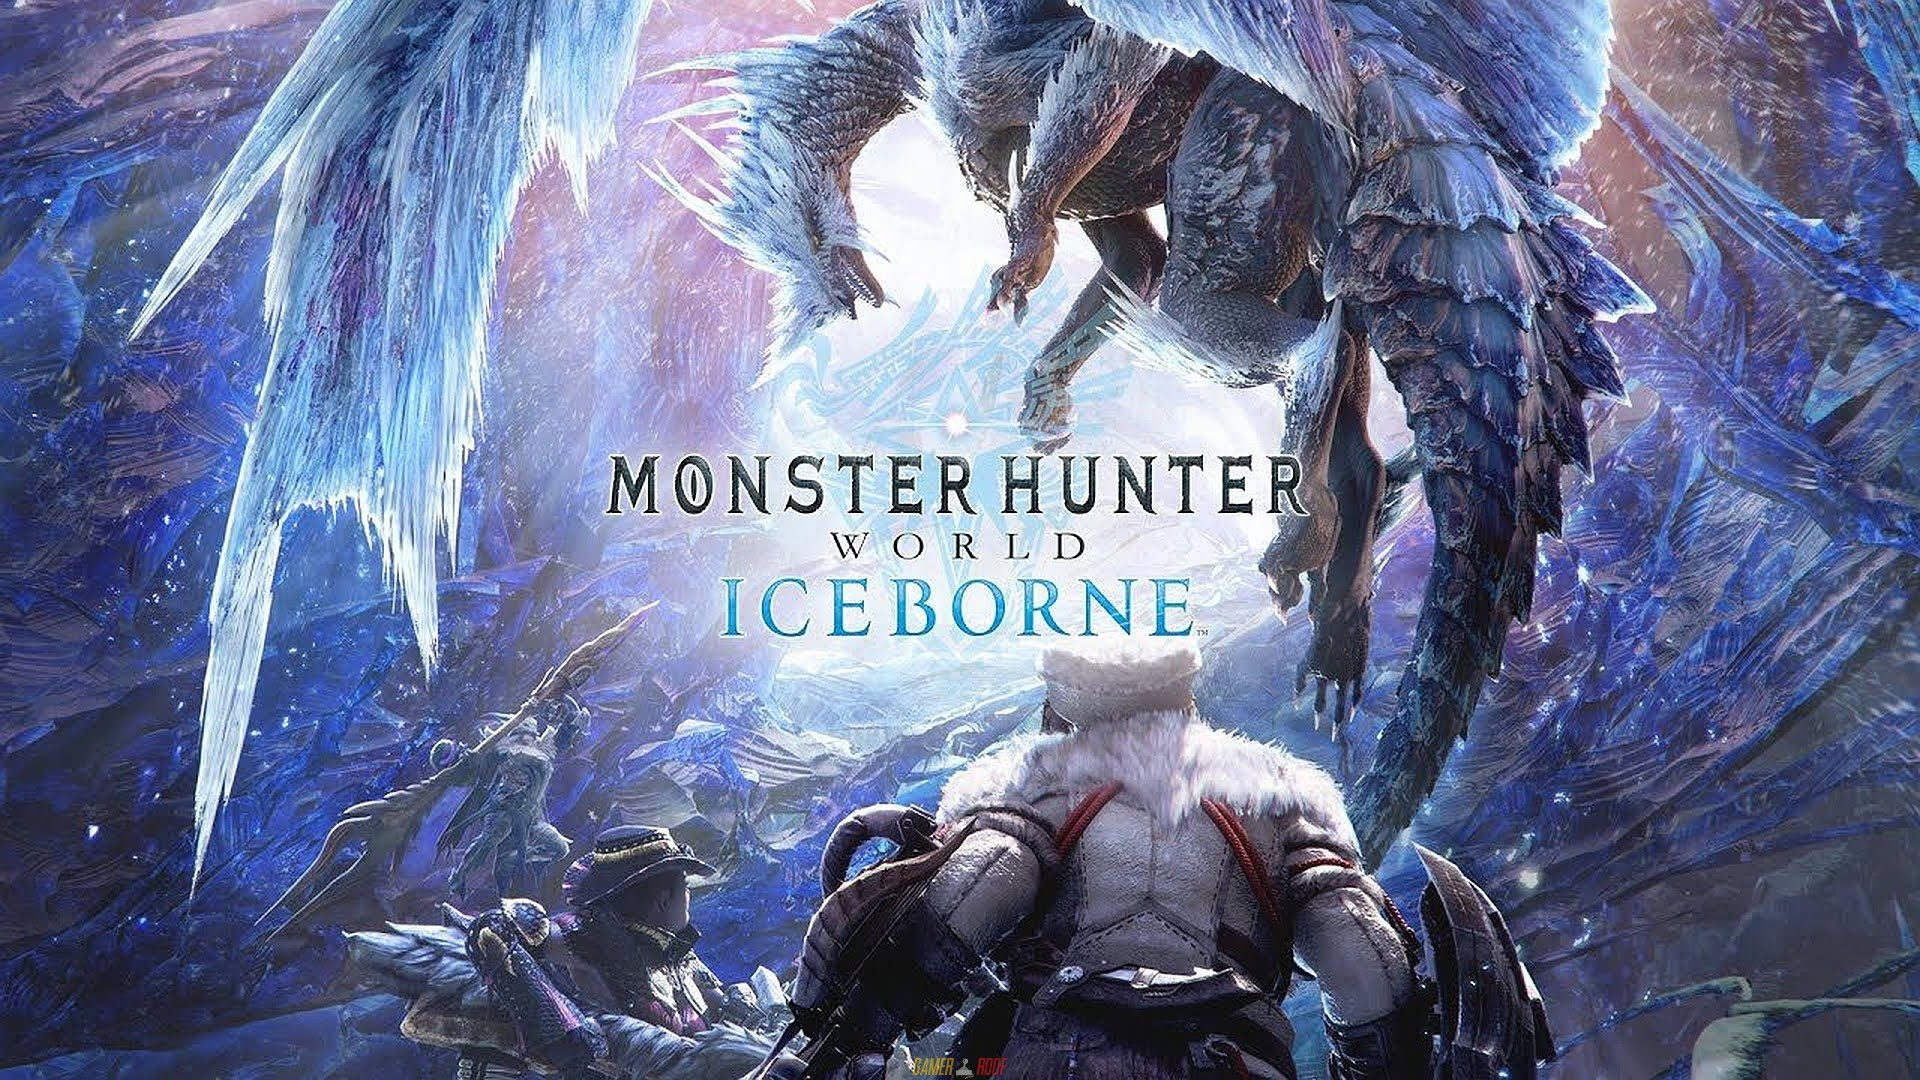 Monster Hunter World Iceborne DLC PS4 Version Full Free Game Download